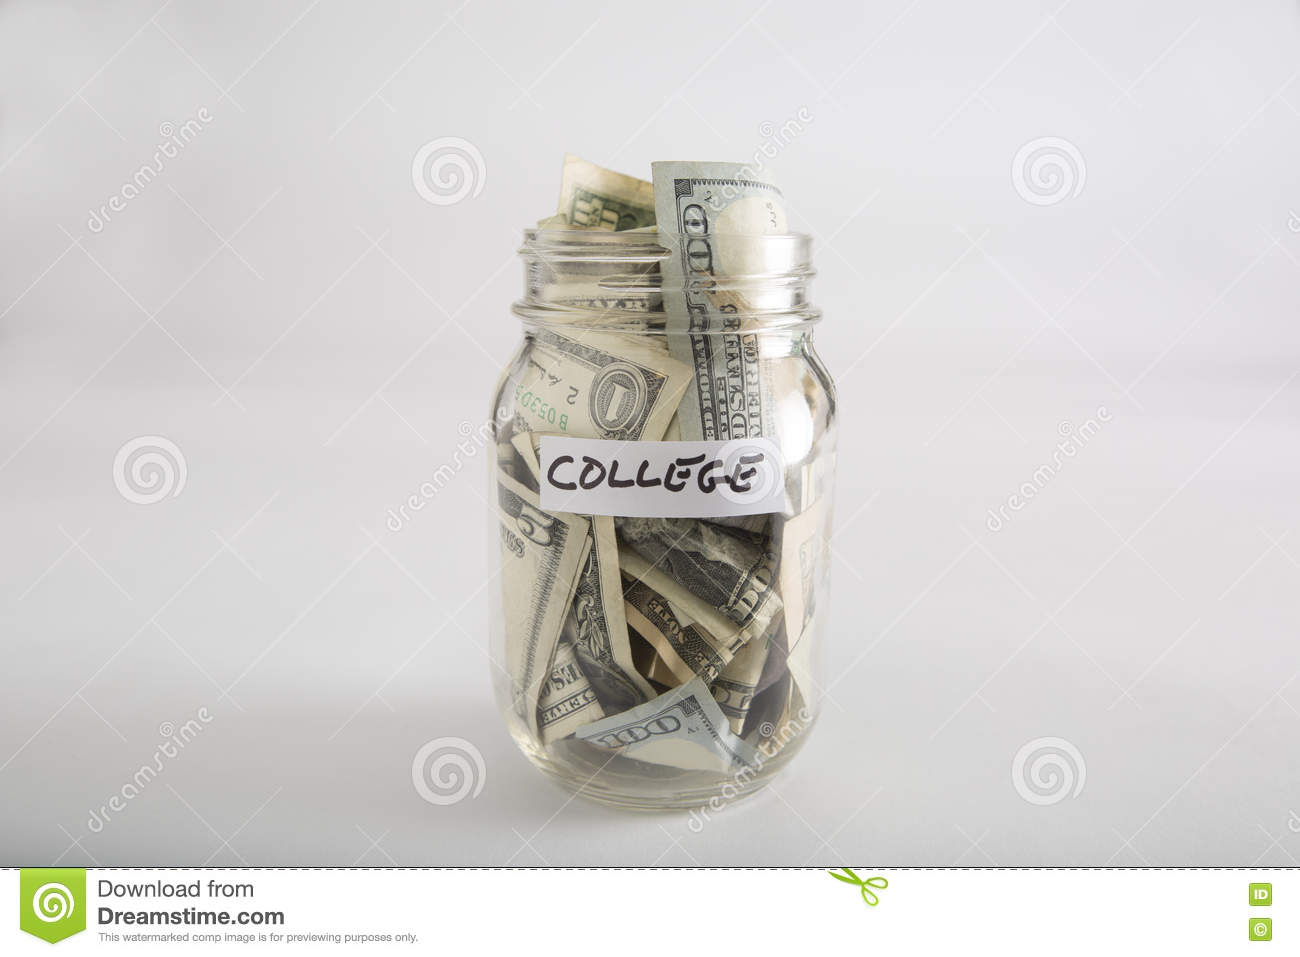 Mason jar with money for college